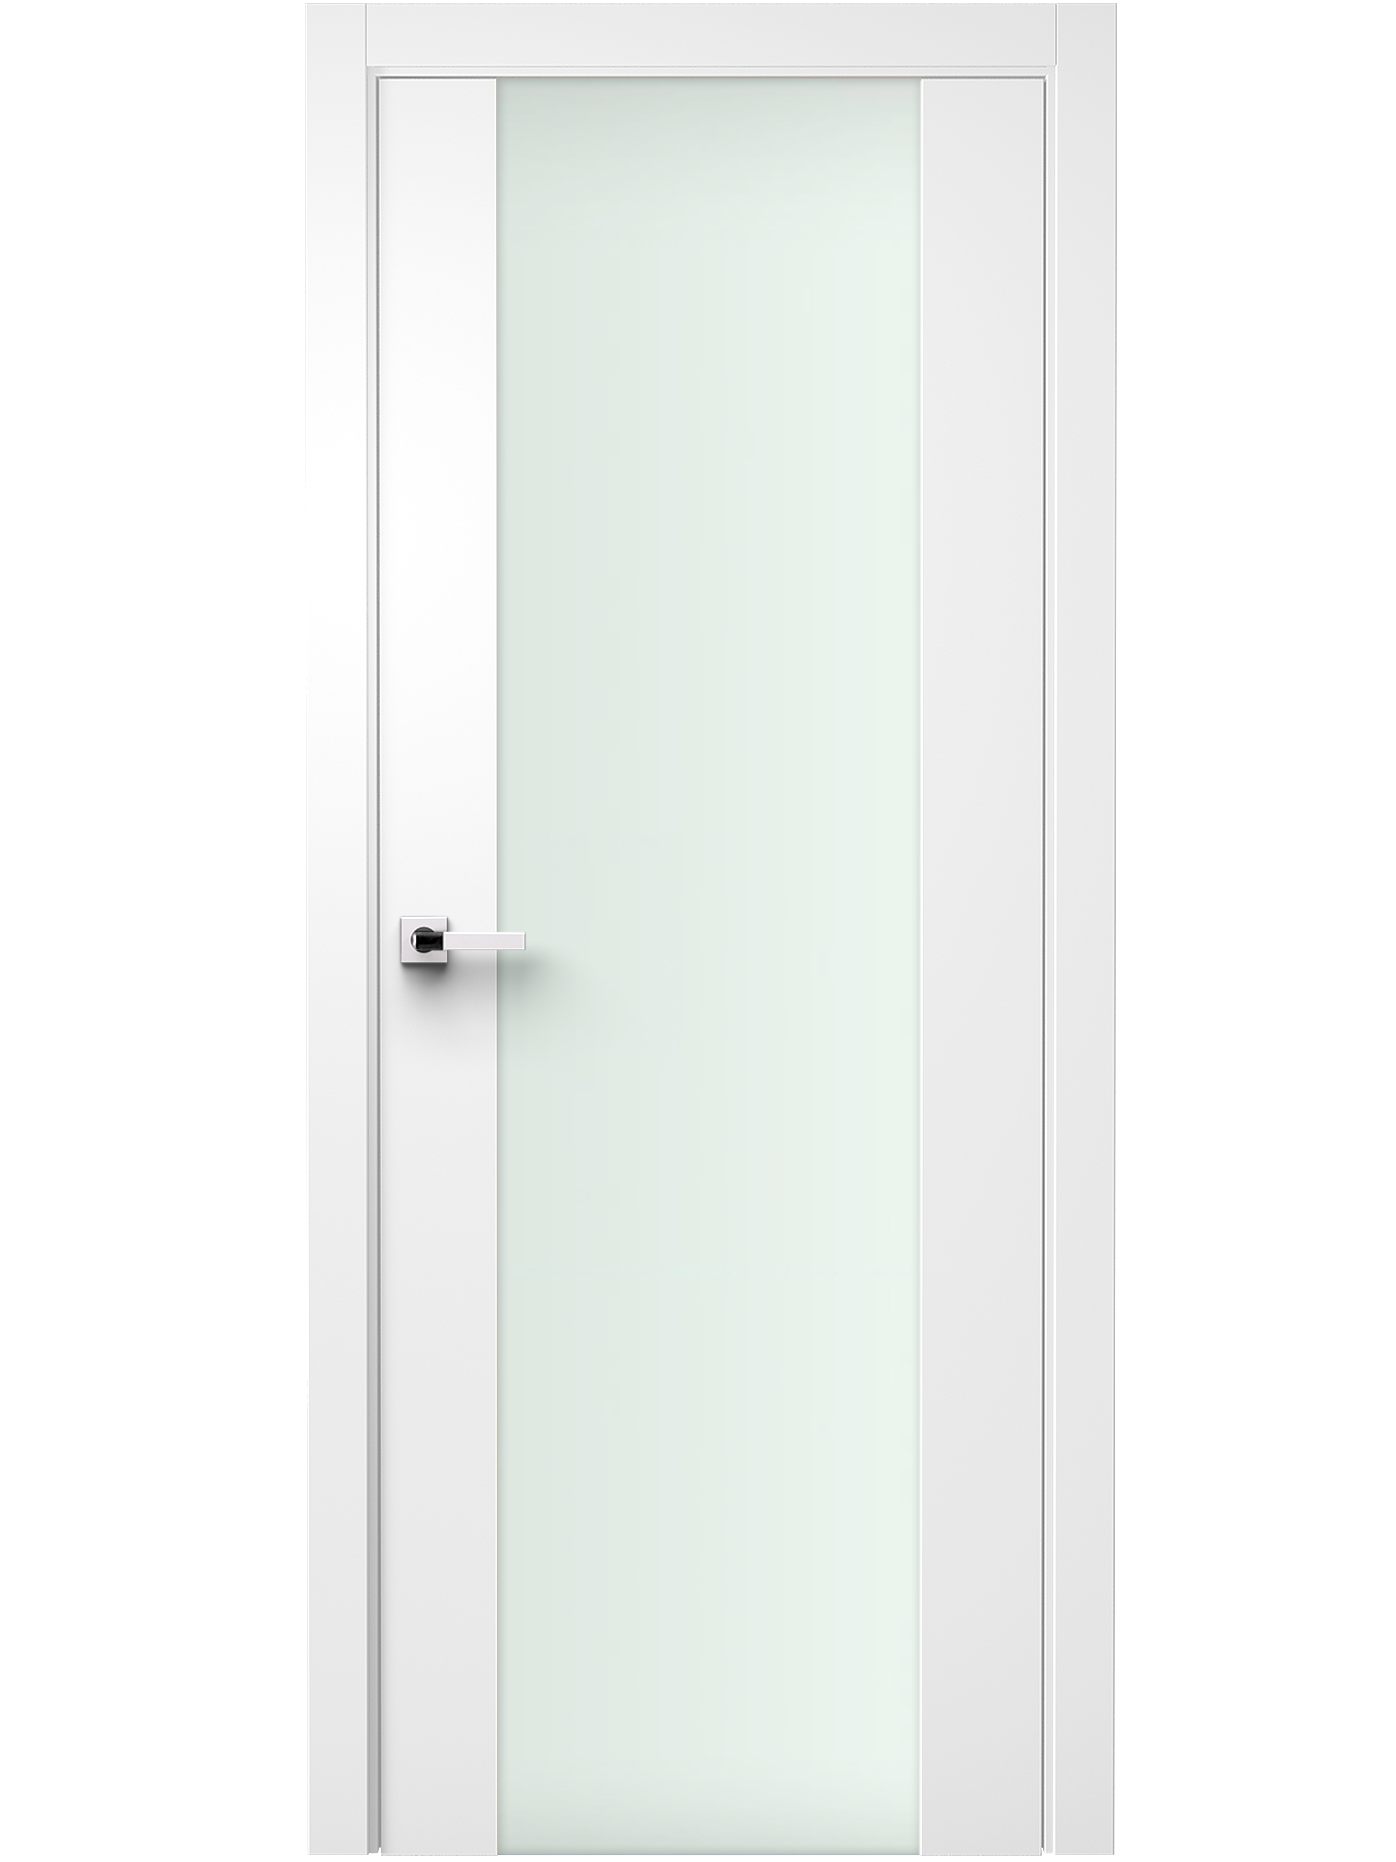 Image Vetra Interior Door Soft Touch White/ Frosted Glass 0